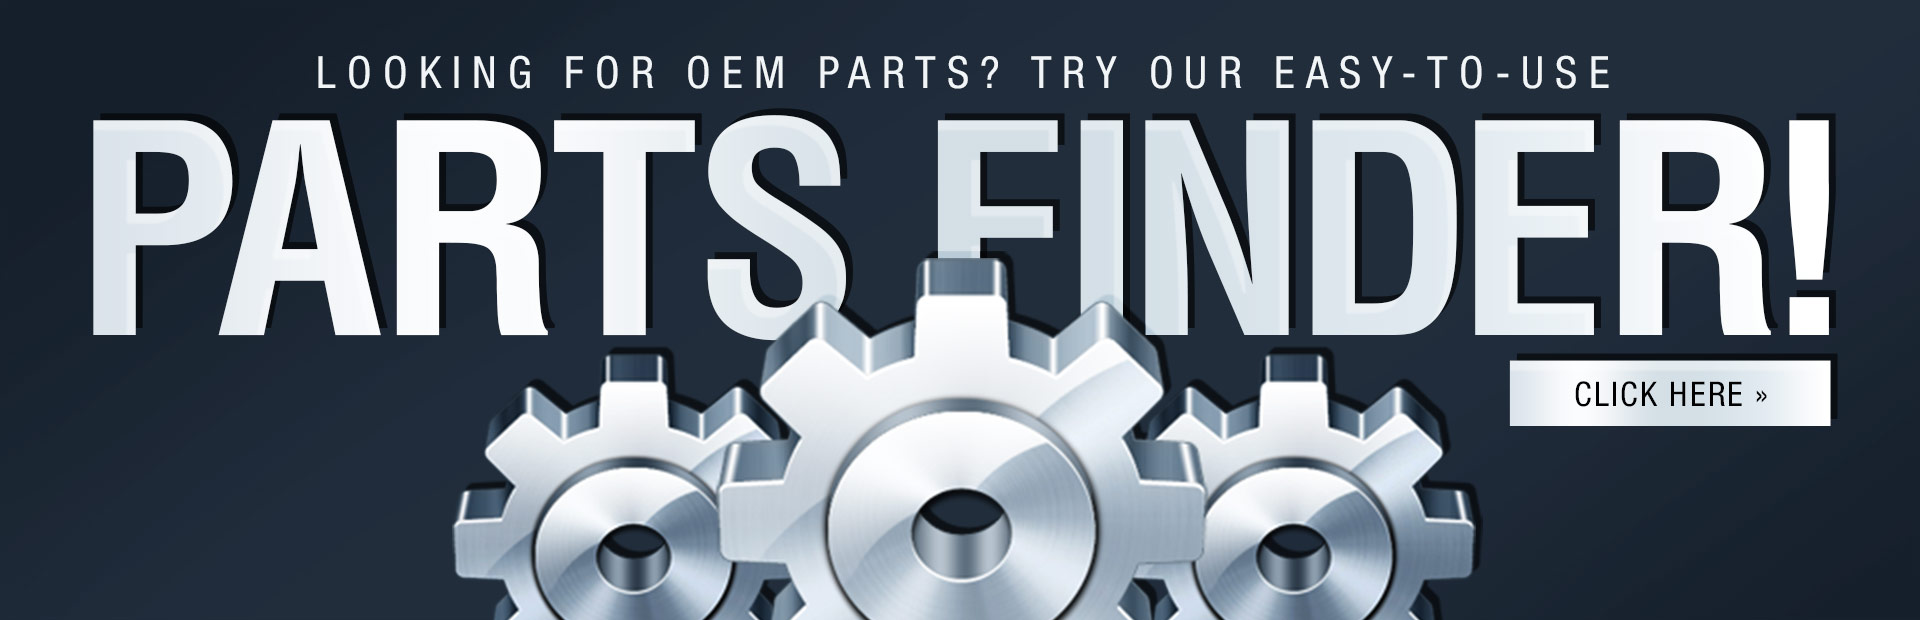 Looking for OEM parts? Click here to try our easy-to-use parts finder!